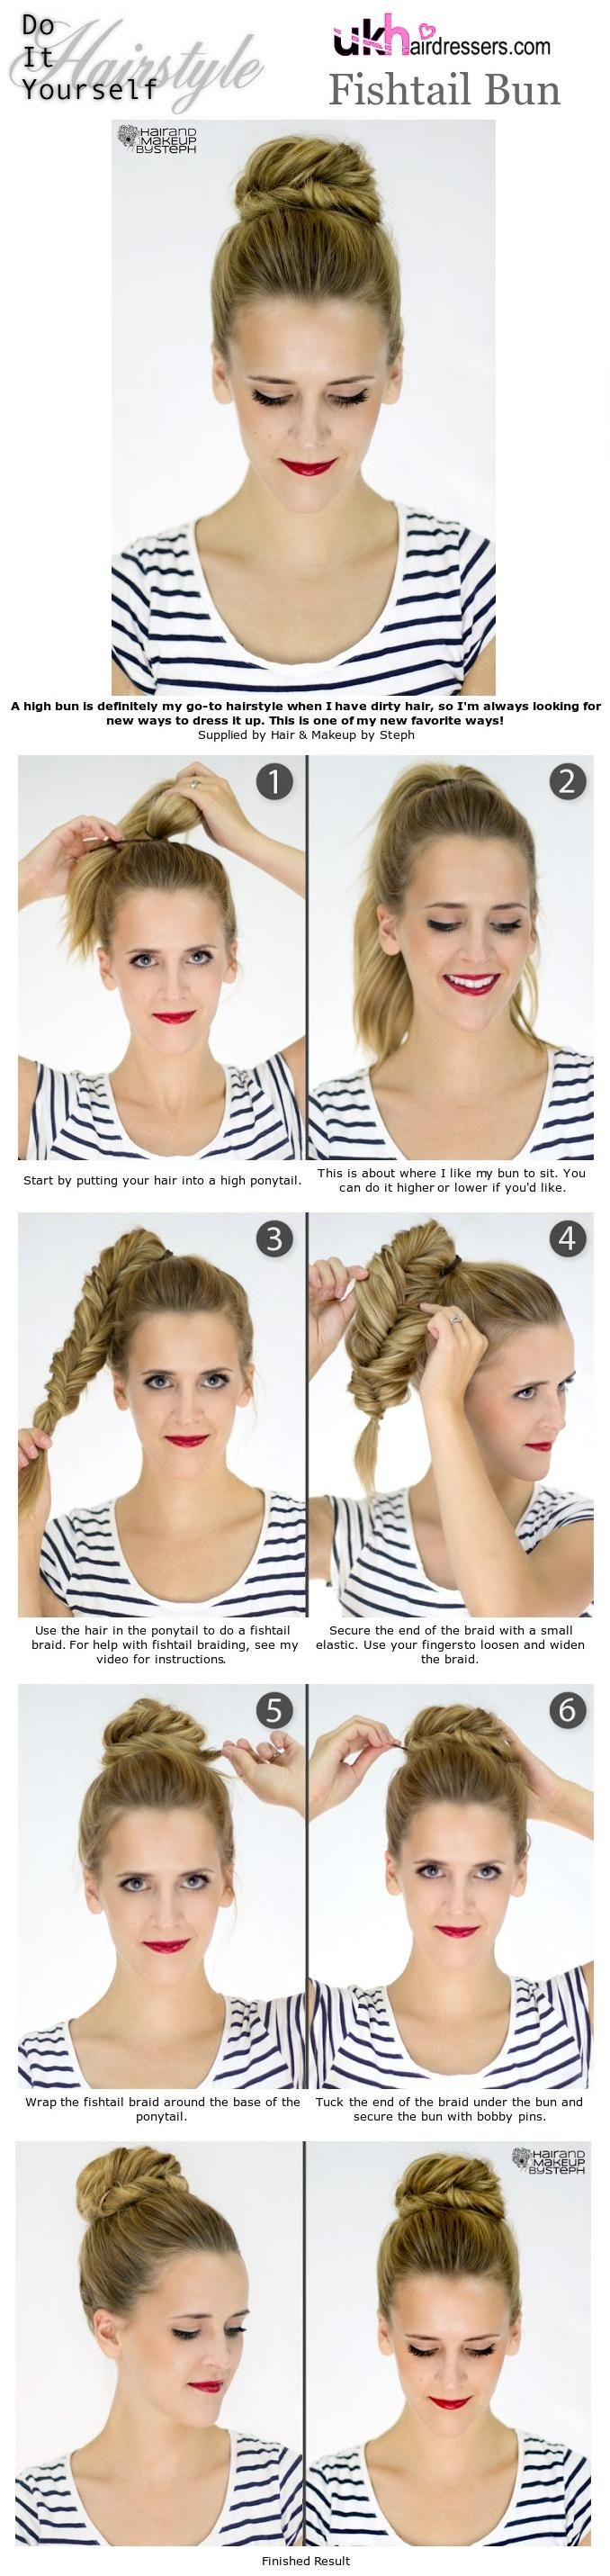 Best hairstyle tutorials for everyday fishtail bun fishtail and buns best hairstyle tutorials for everyday solutioingenieria Image collections